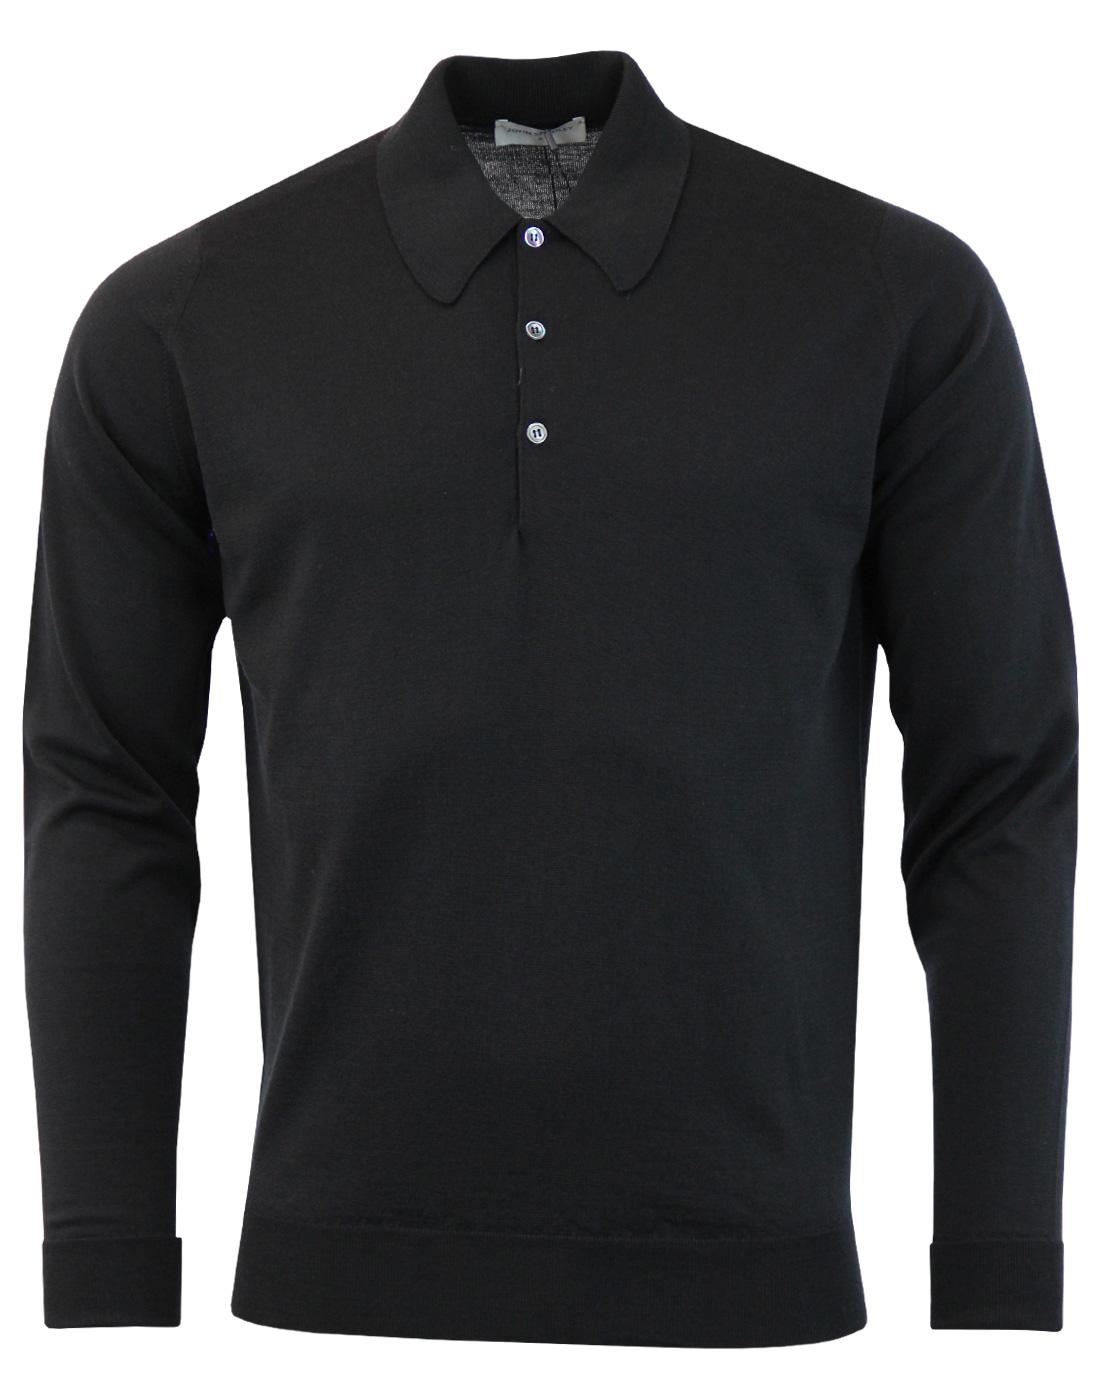 Dorset JOHN SMEDLEY Made in England Knitted Polo B